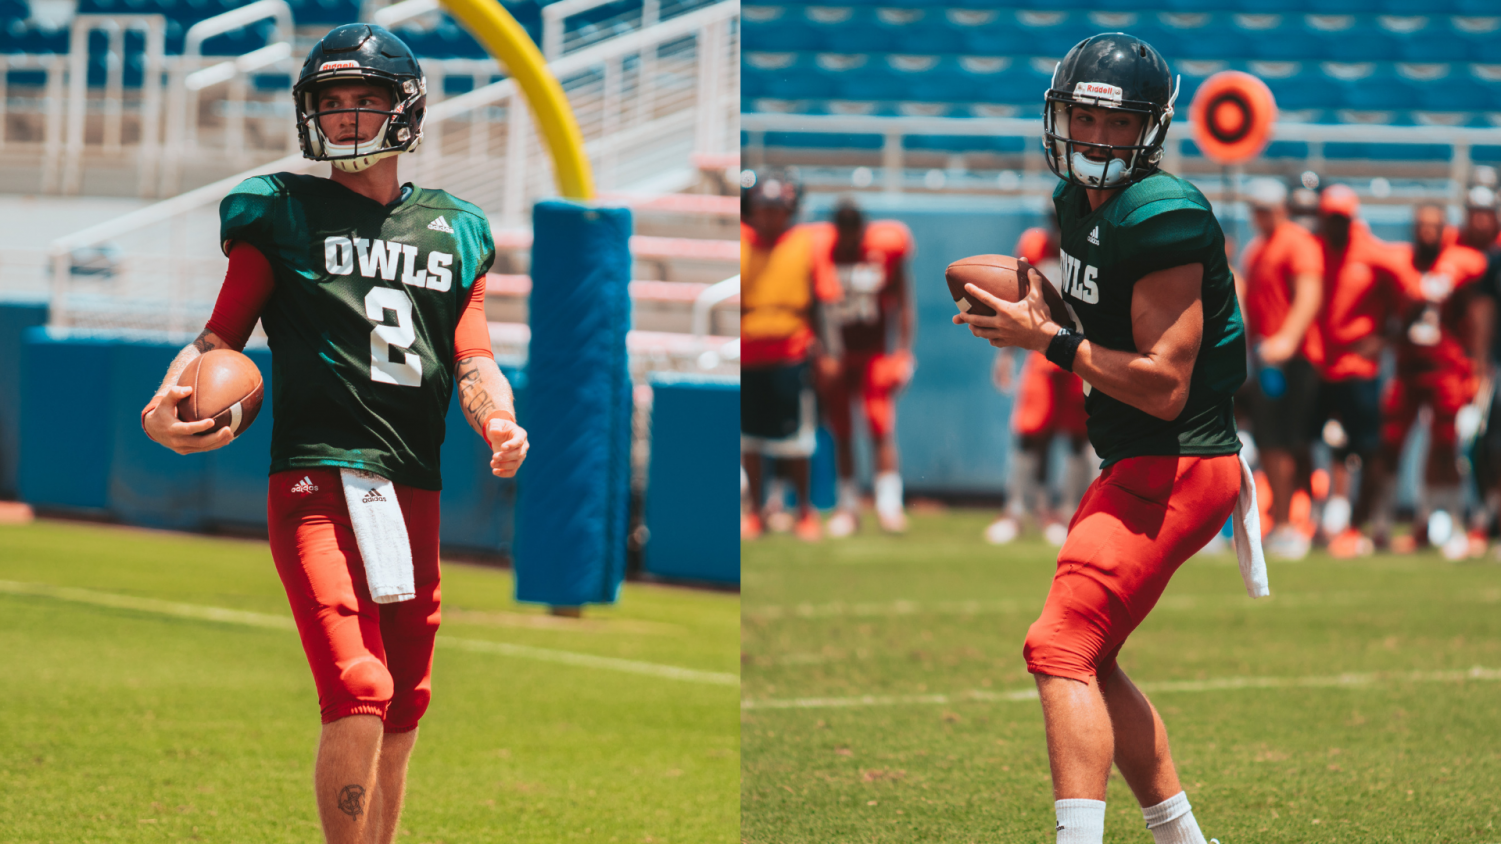 Chris Robison (Left) and Nick Tronti (Right) are currently in competition for the starting job at signal caller. Photo by: Alex Liscio